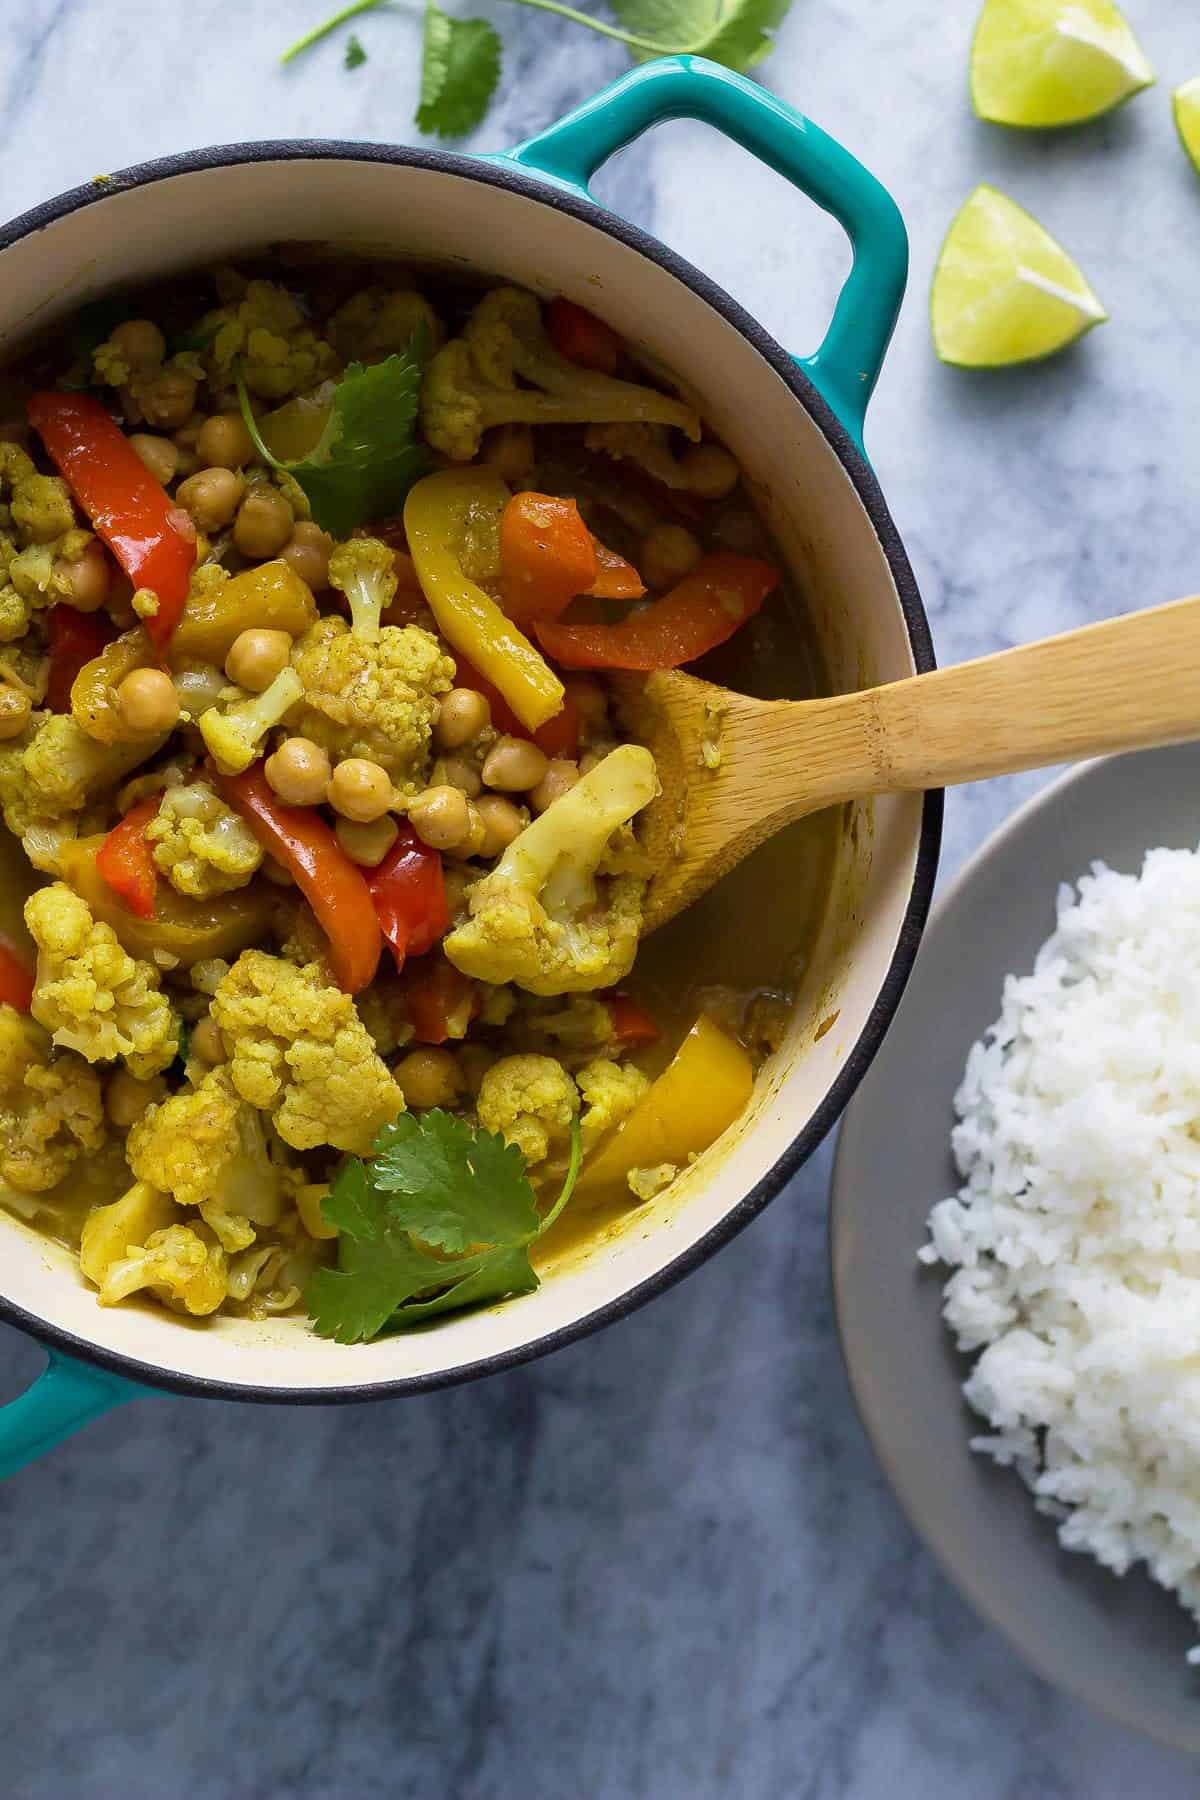 This chickpea & cauliflower vegan curry is bright and flavorful, and is easy enough for a week-night dinner!